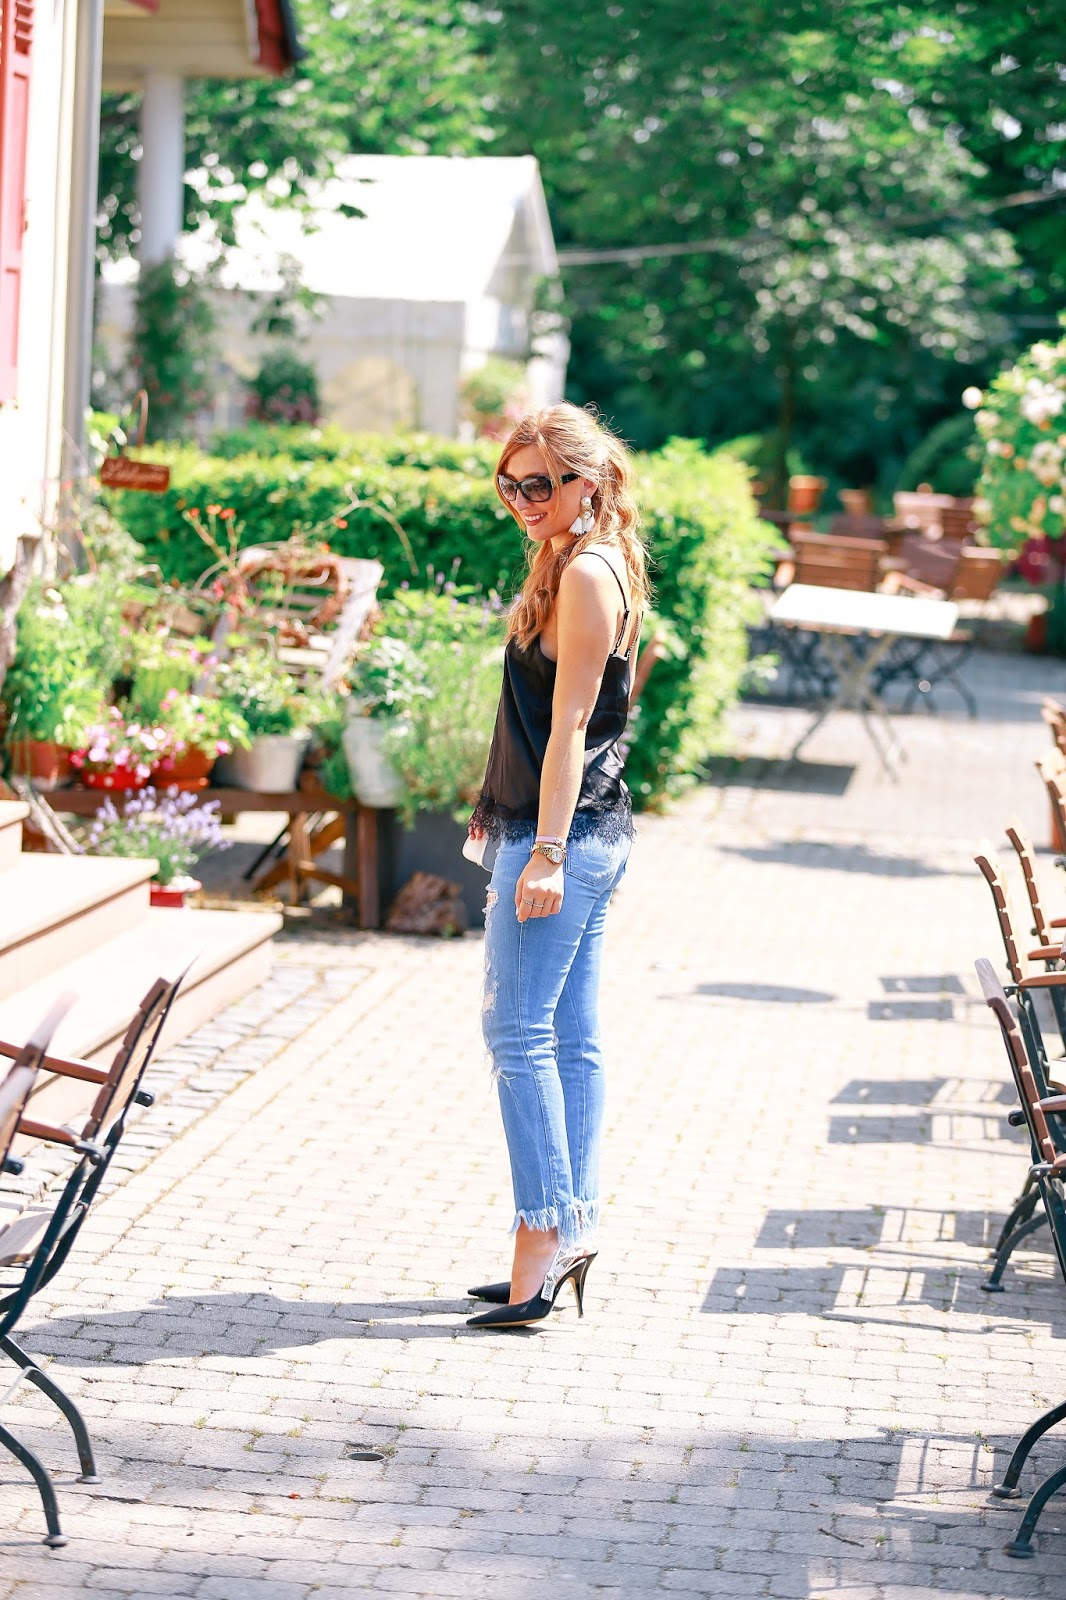 Ripped-Jeans-Seidentop-Jadior-High-heels-christian-dior-fashionblogger-bloggerstyle